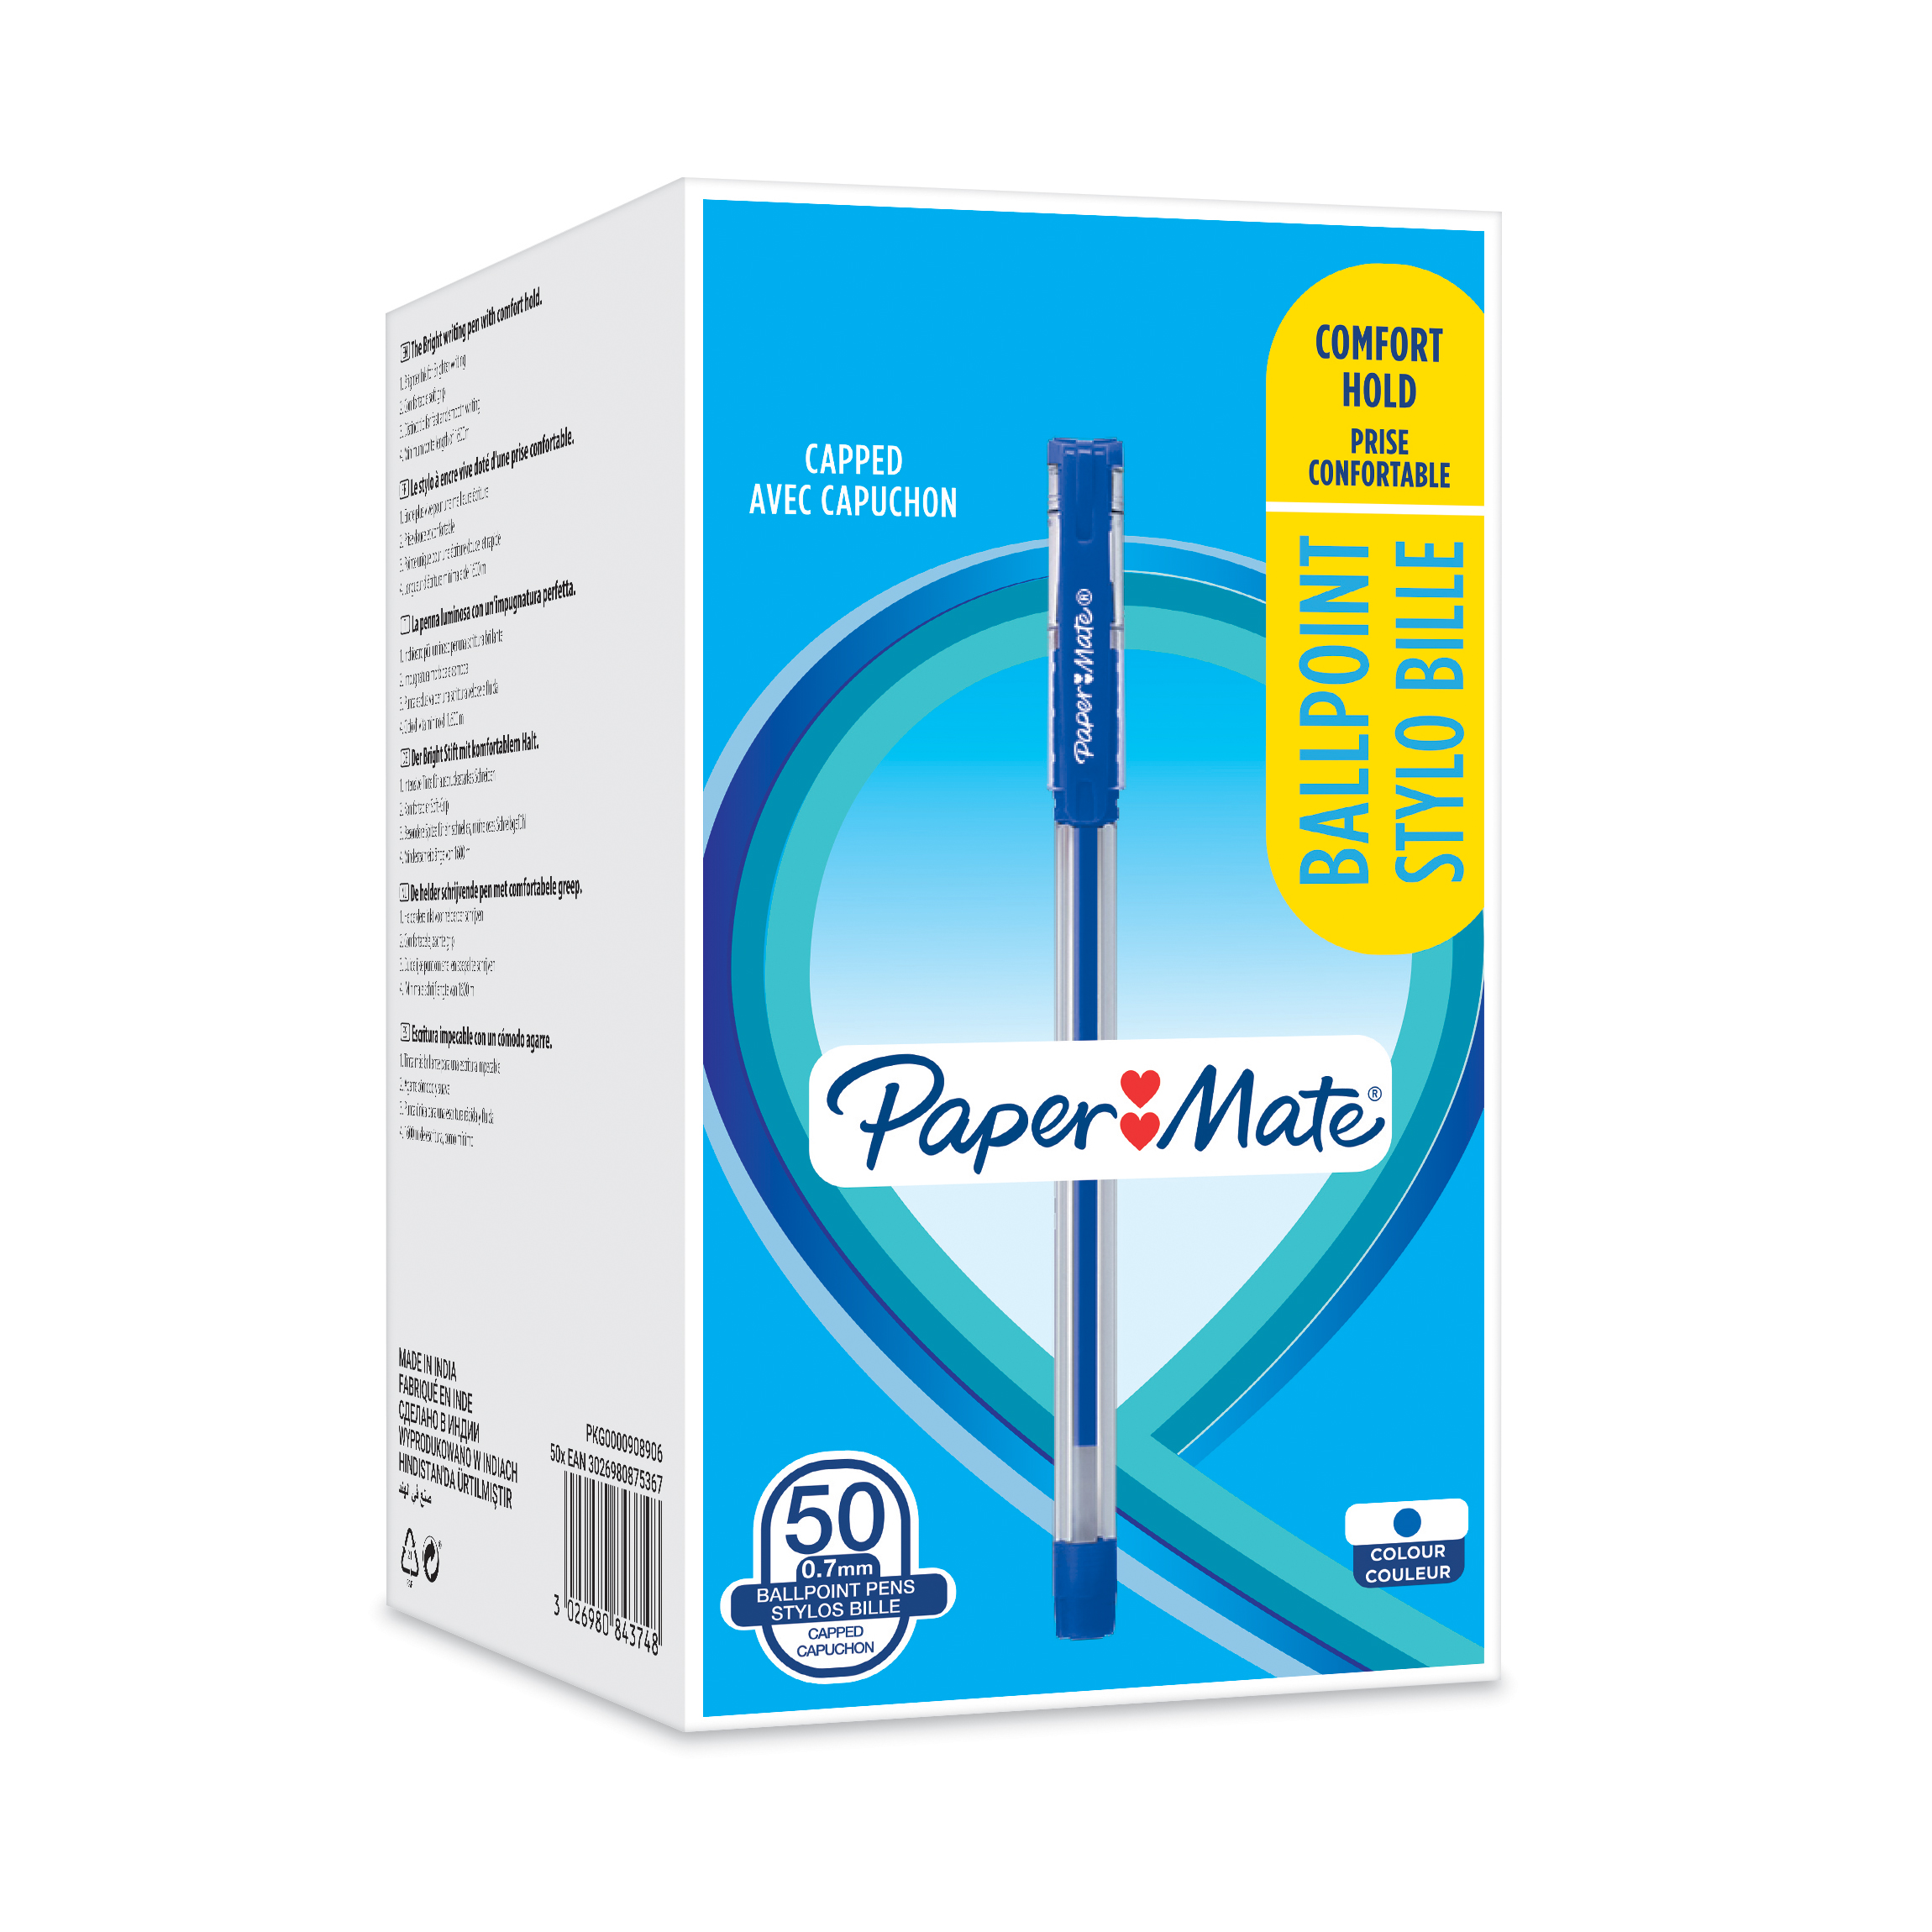 Paper Mate Ball Point Pen 0.7mm Capped Ergonomic Grip Blue Ref 2084374 Box 50